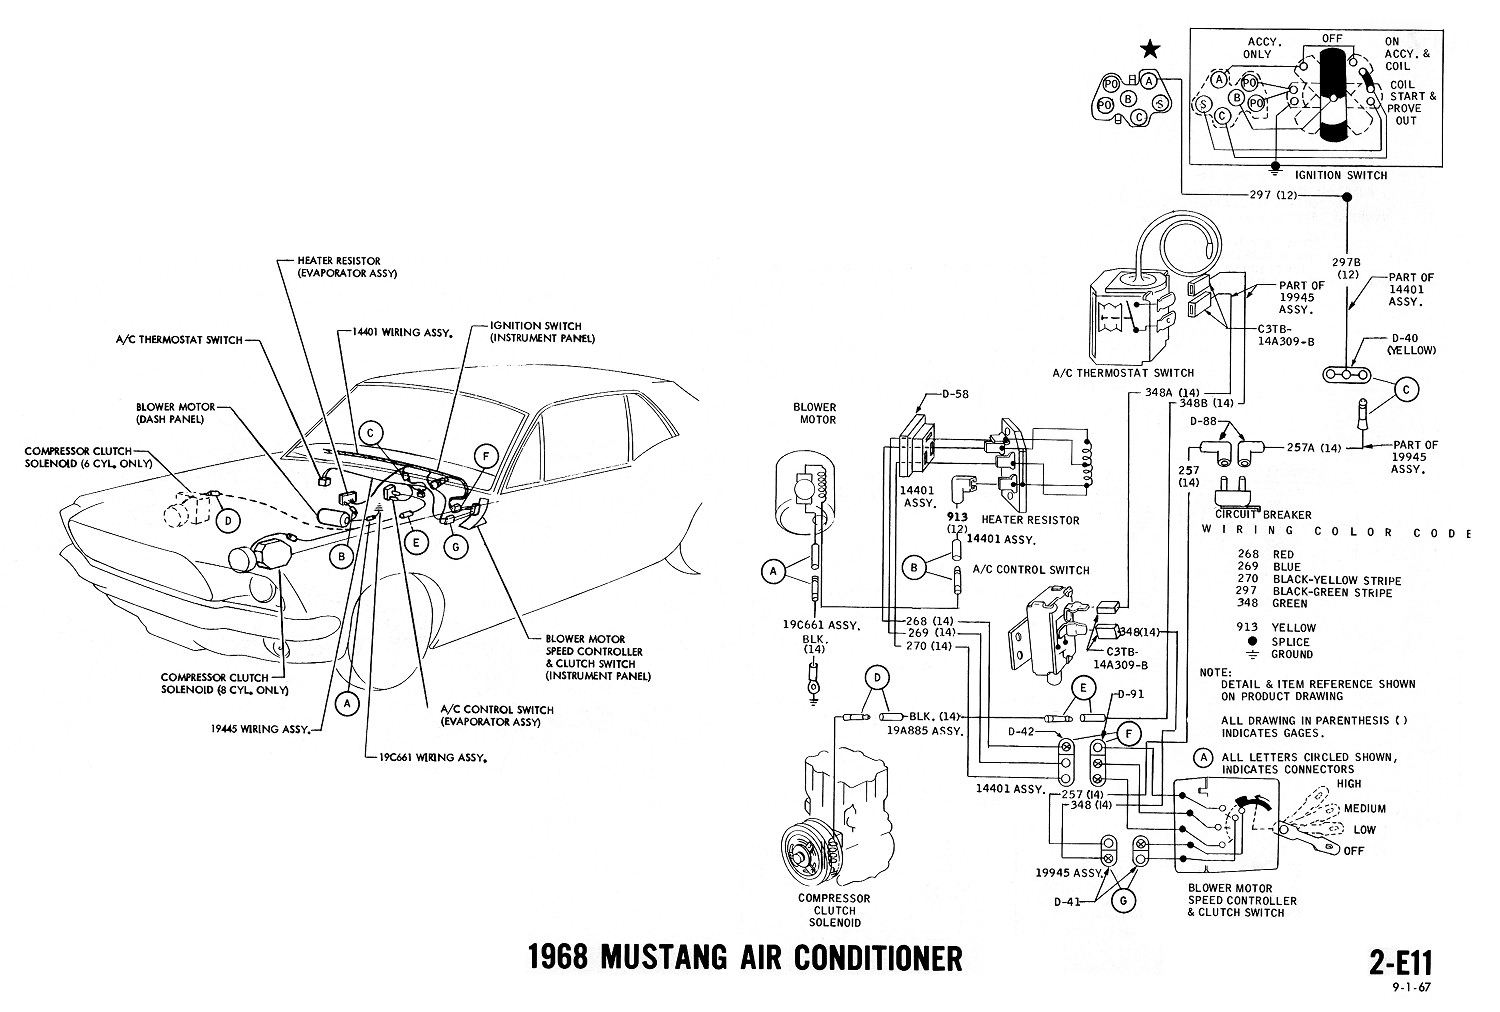 1968 mustang wiring diagrams : evolving software  peter franza